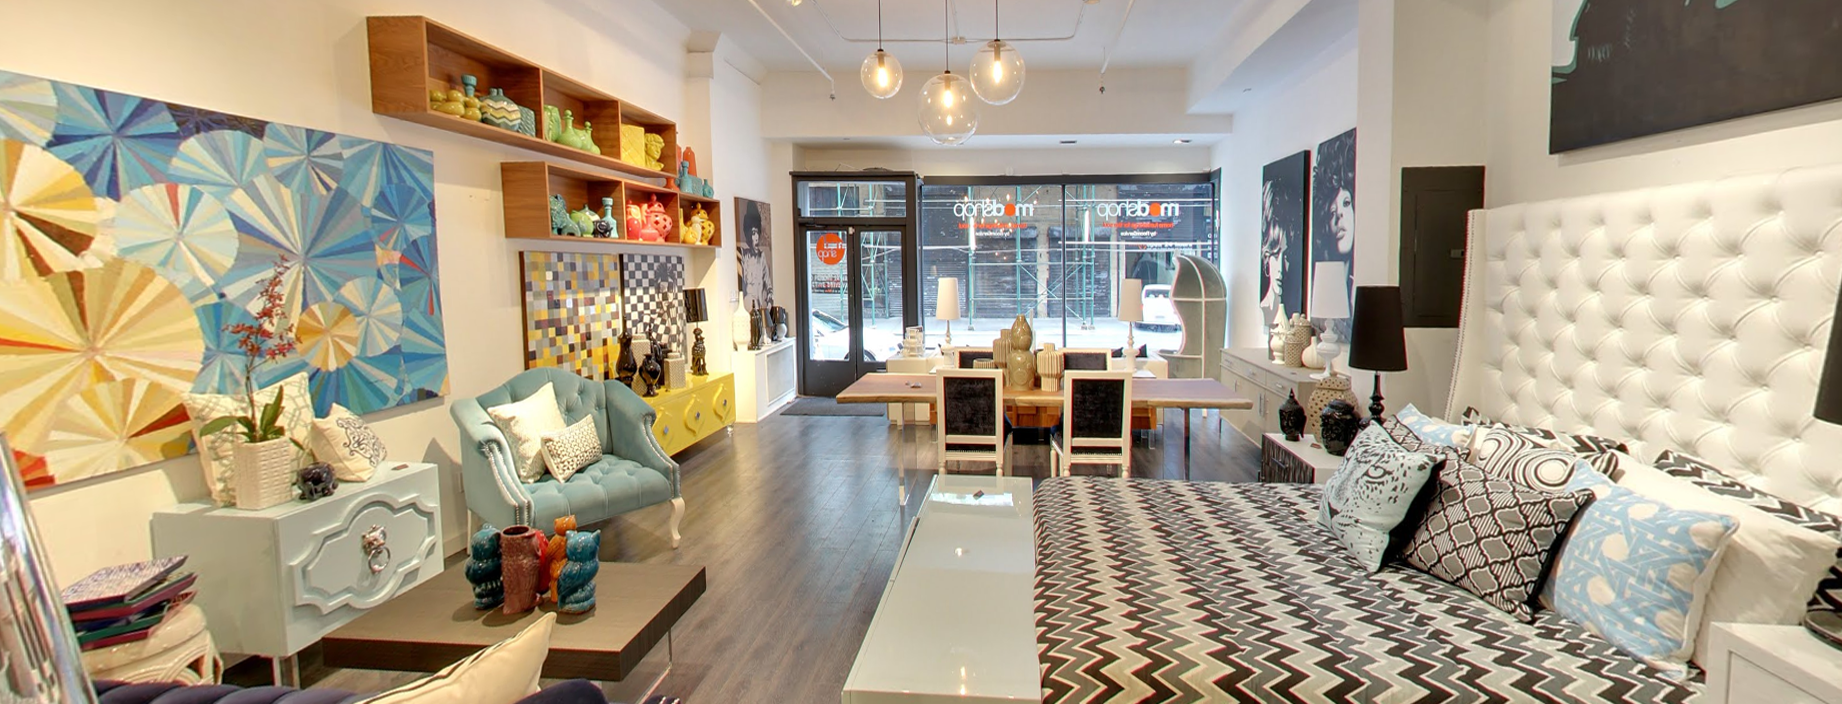 Modern furniture store in nyc - Home decor stores in charlotte nc image ...